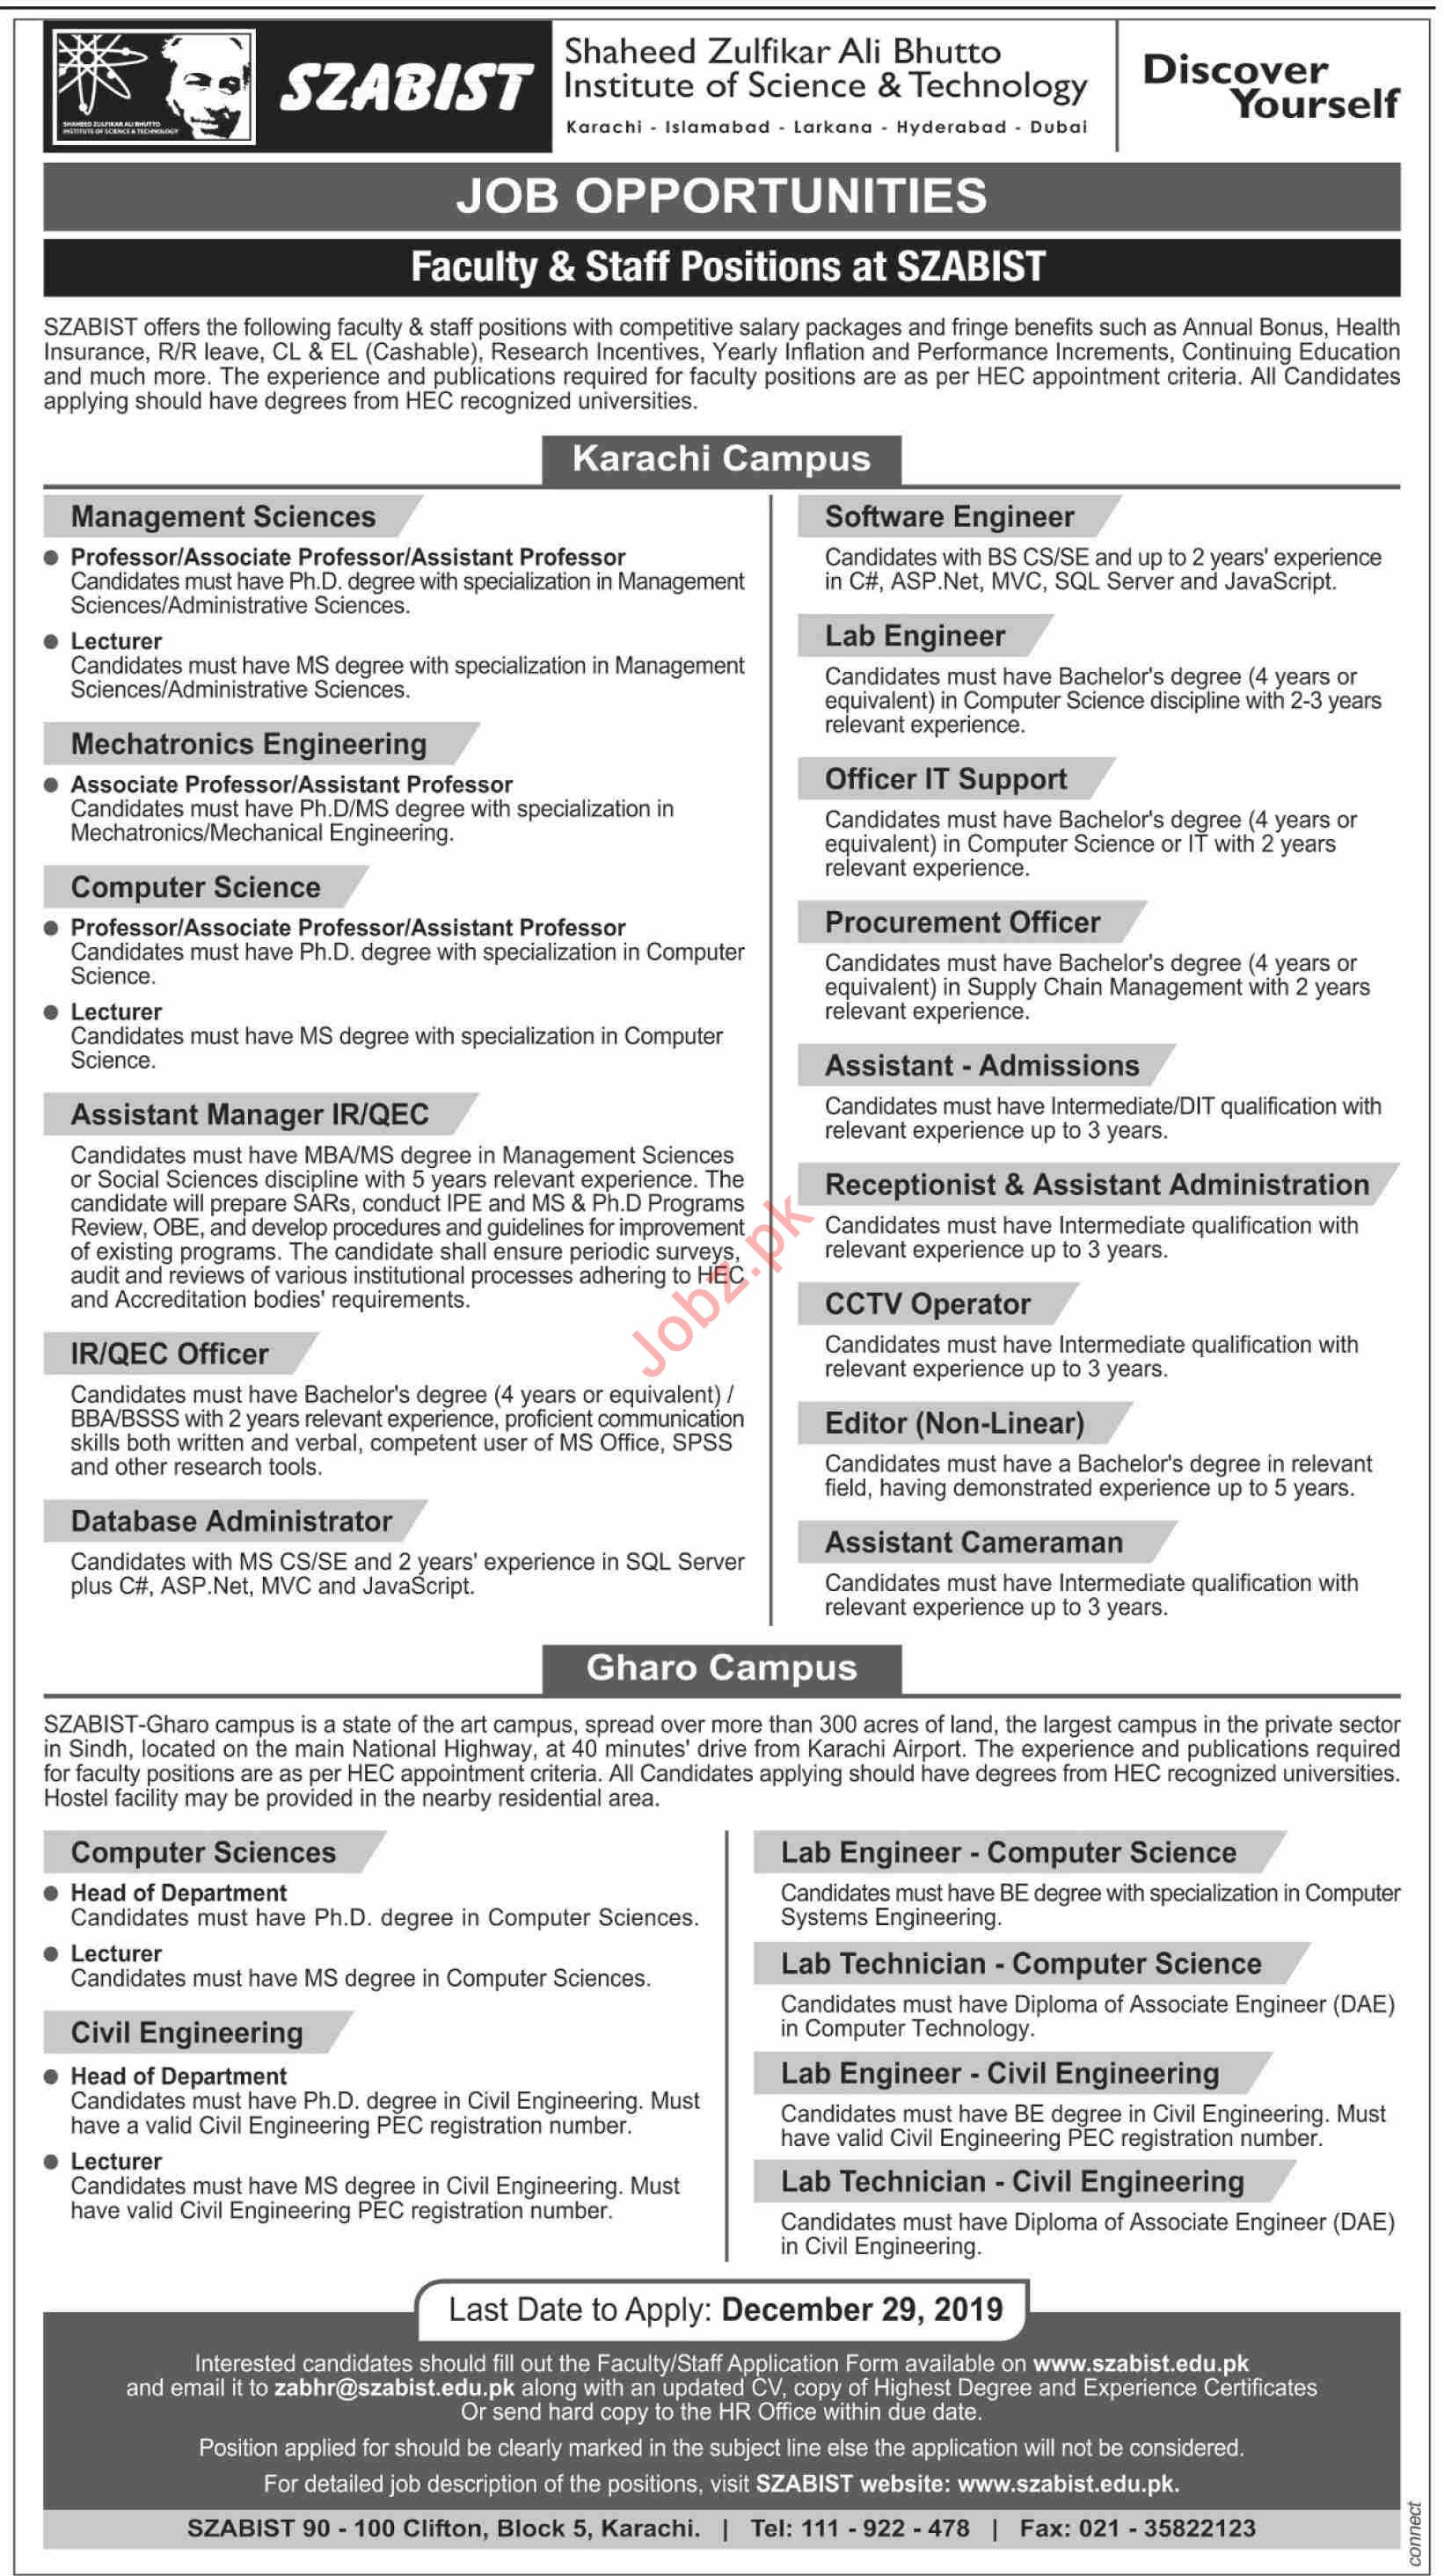 SZABIST Faculty & Staff Positions Jobs 2020